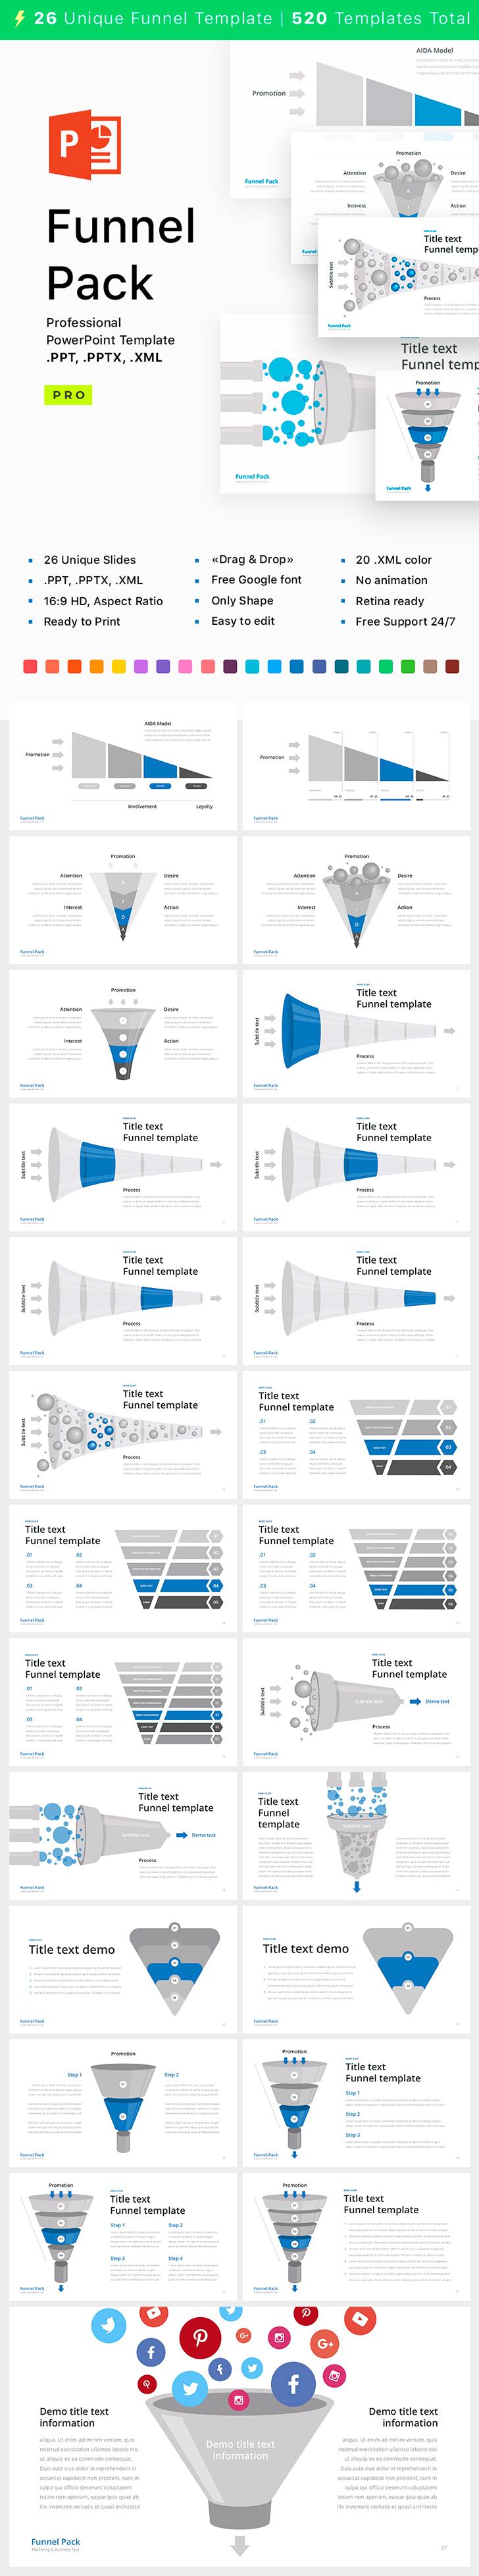 Powerpoint Funnel Shape Ppt Pptx Xml Download Now